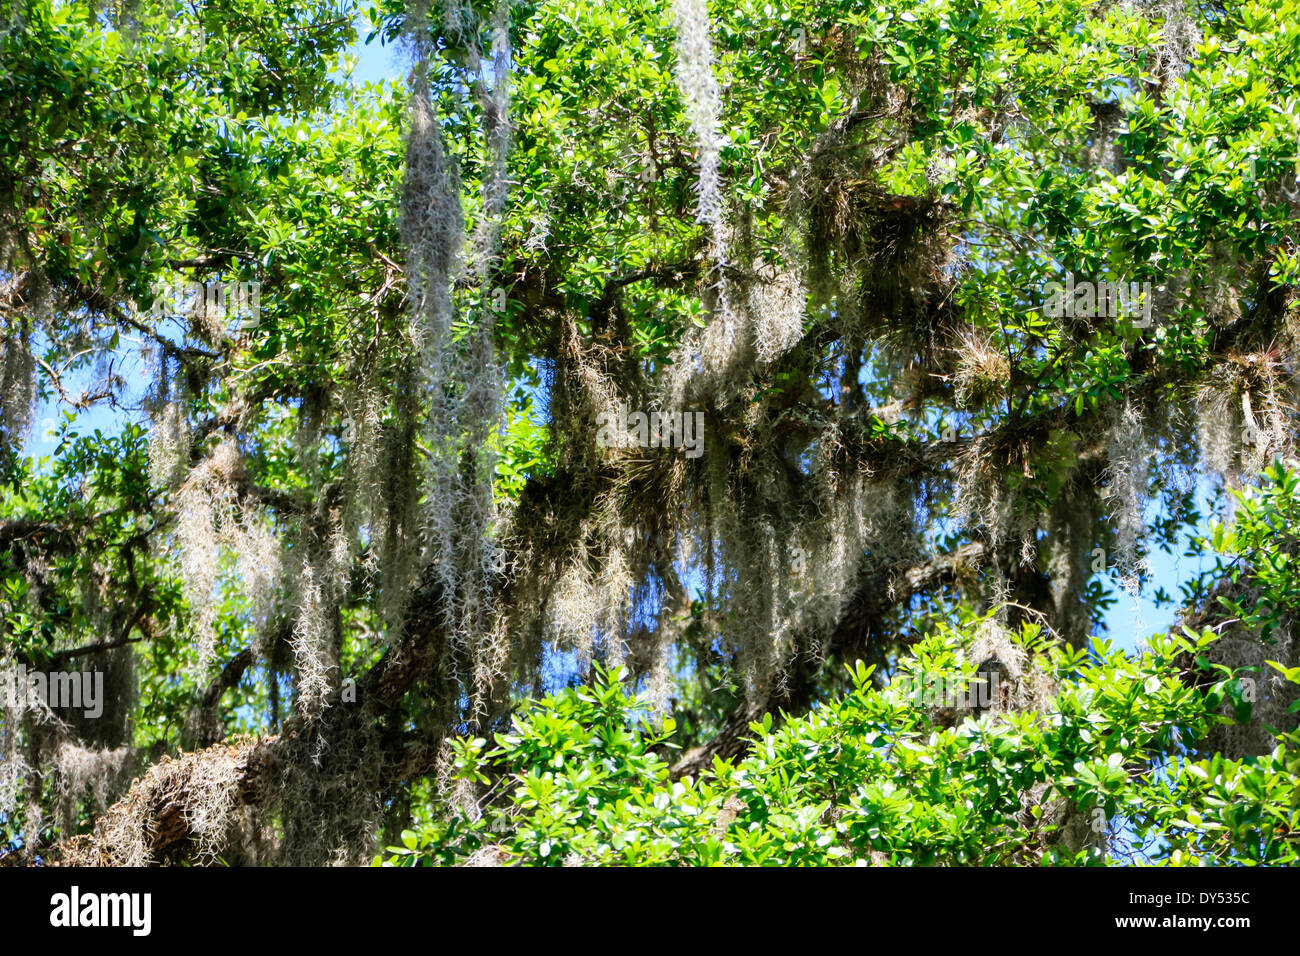 Spanish Moss ever present in the trees of the Southern States of America - Stock Image